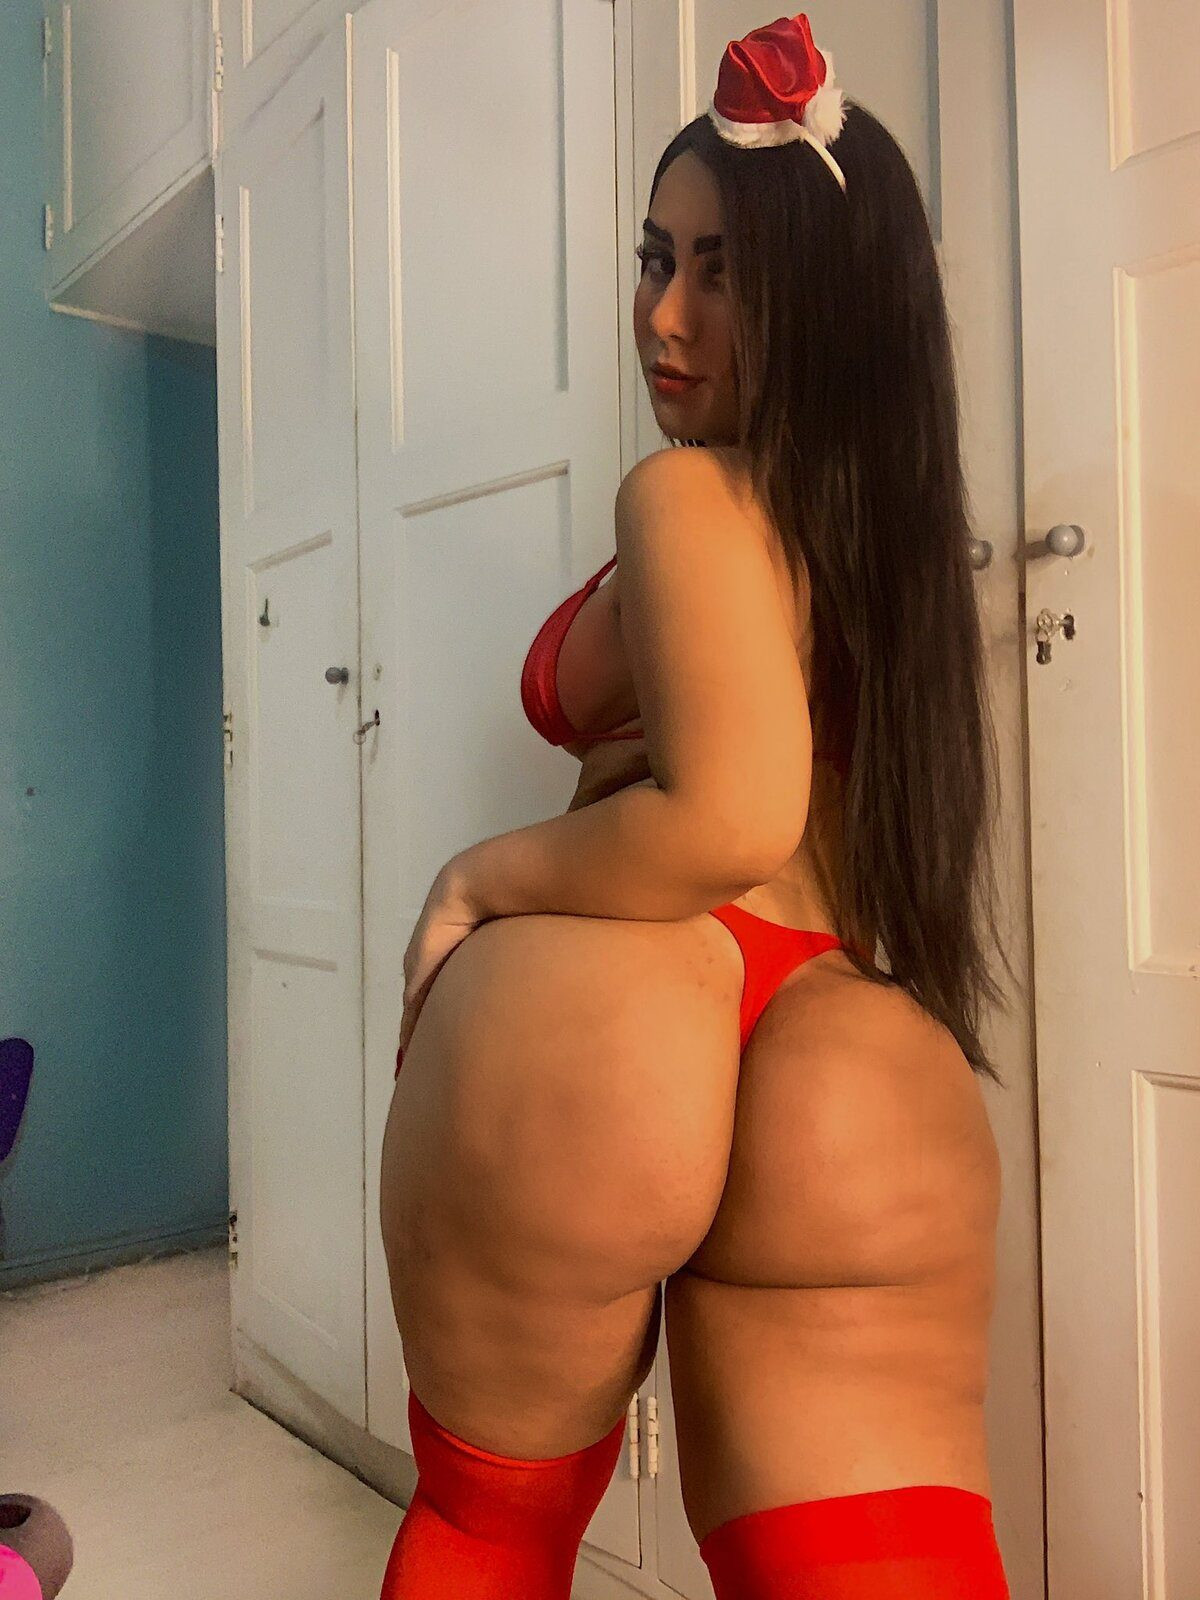 Victoria Matosa onlyfans nudes leaks thefappening.nu 35